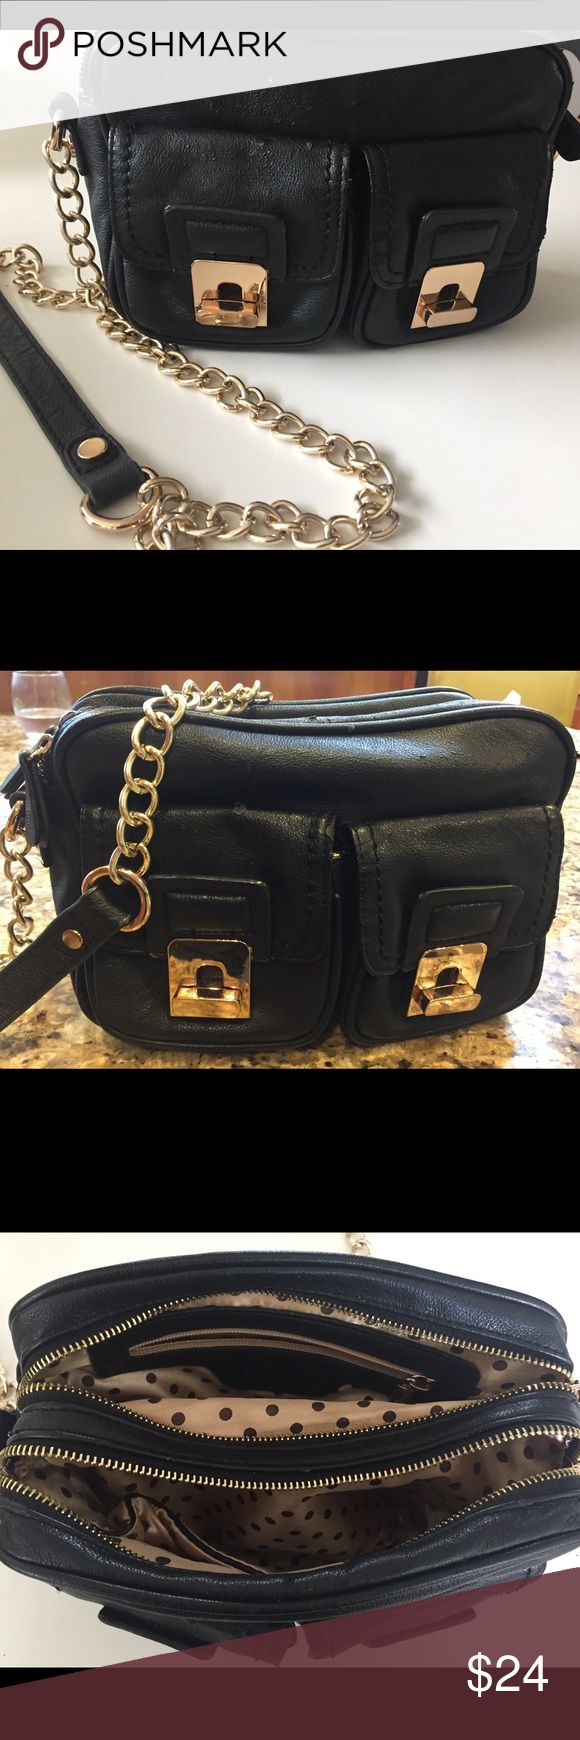 Melie Bianco vegan leather cruelty free handbag Normal wear see photos not as noticeable when carried Melie Bianco Bags Crossbody Bags